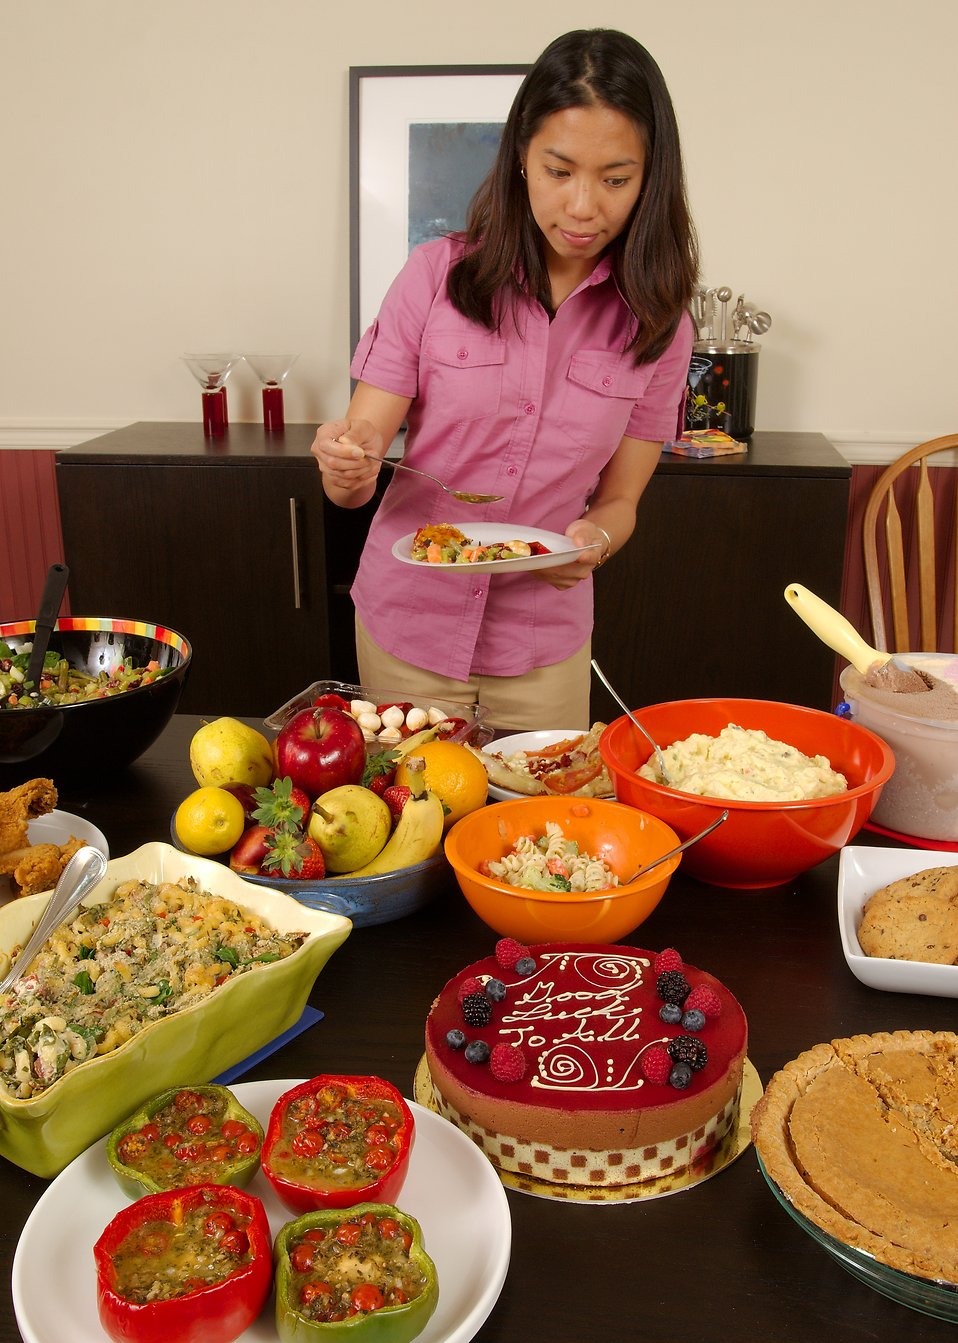 food free stock photo a young asian woman serving herself food